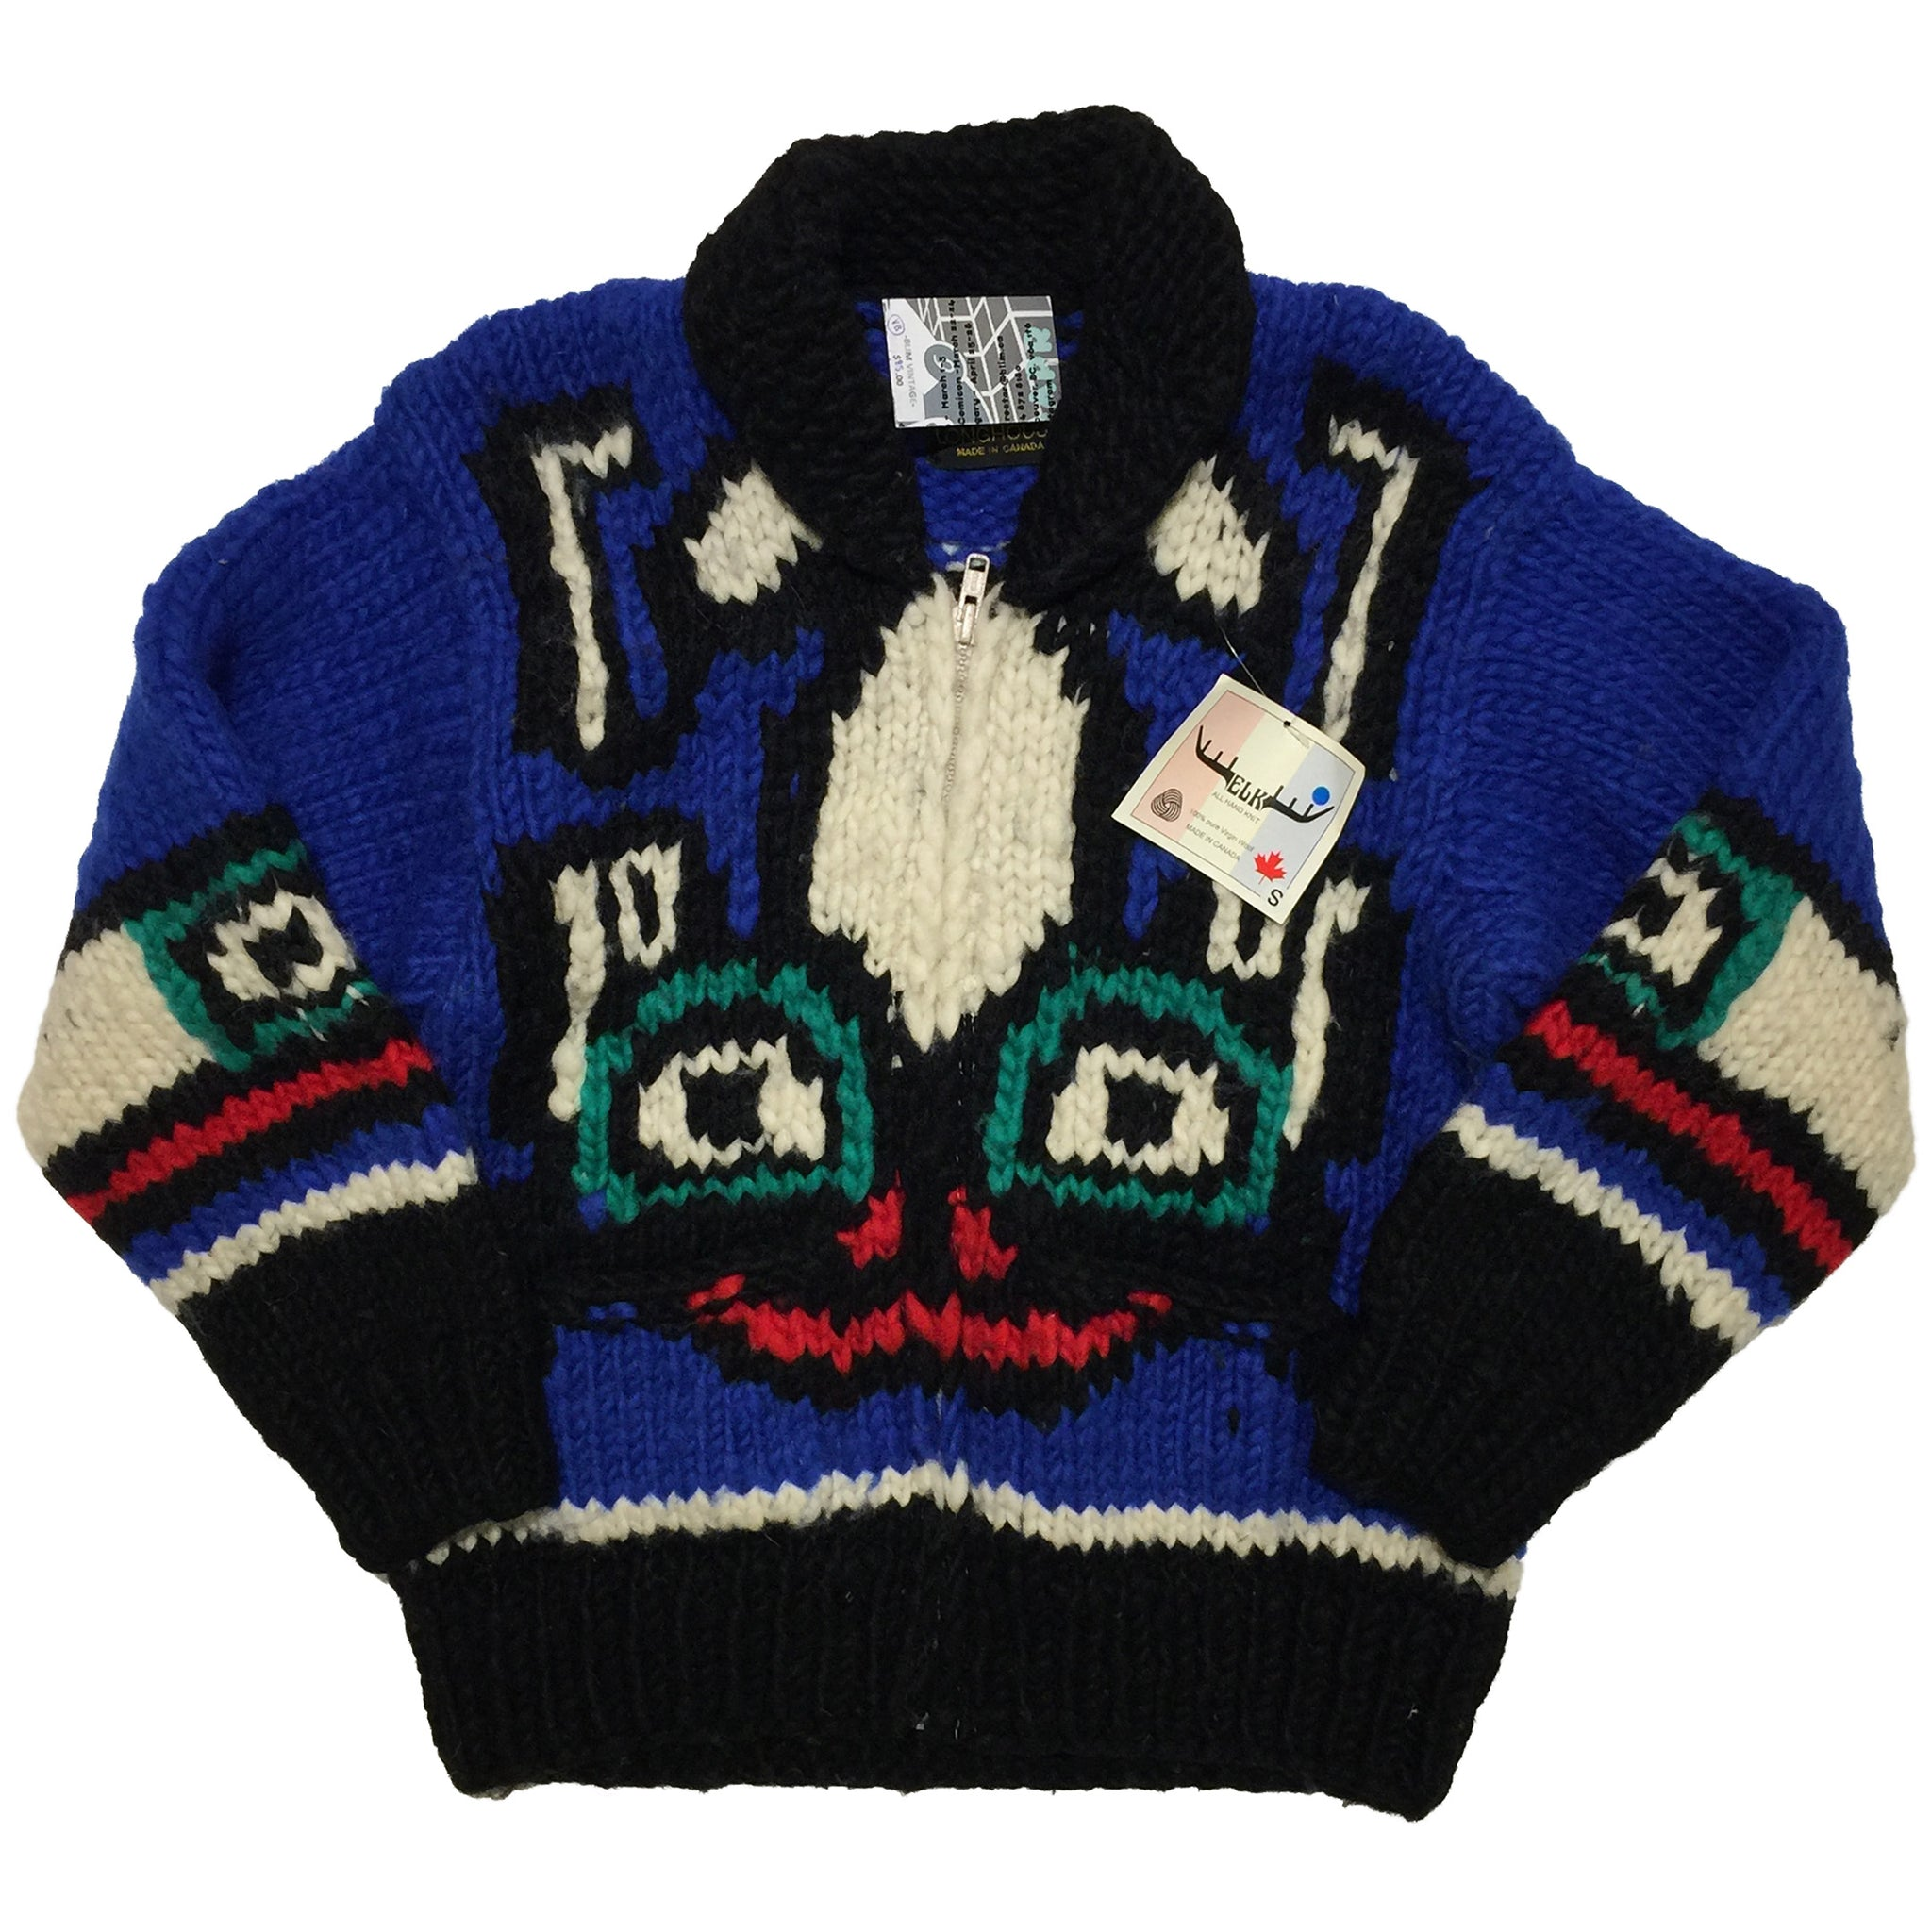 Longhouse 100% Pure Virgin Wool Sweater made in Canada